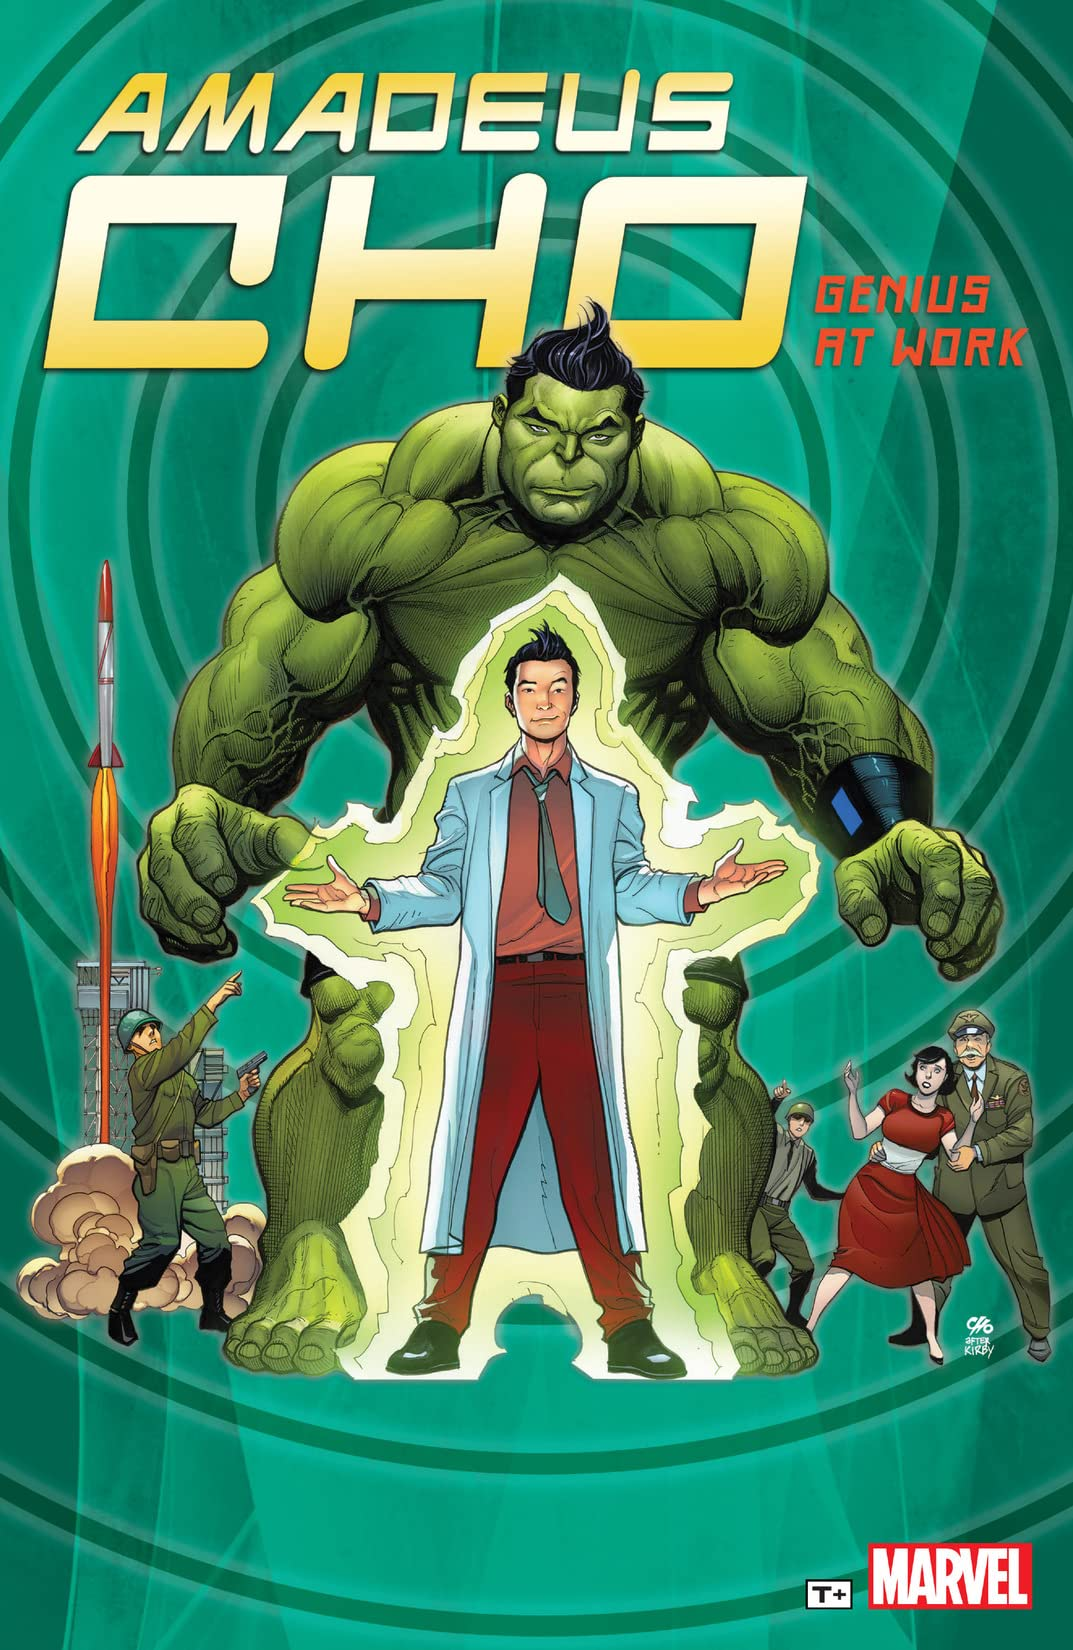 Amadeus Cho: Genius At Work